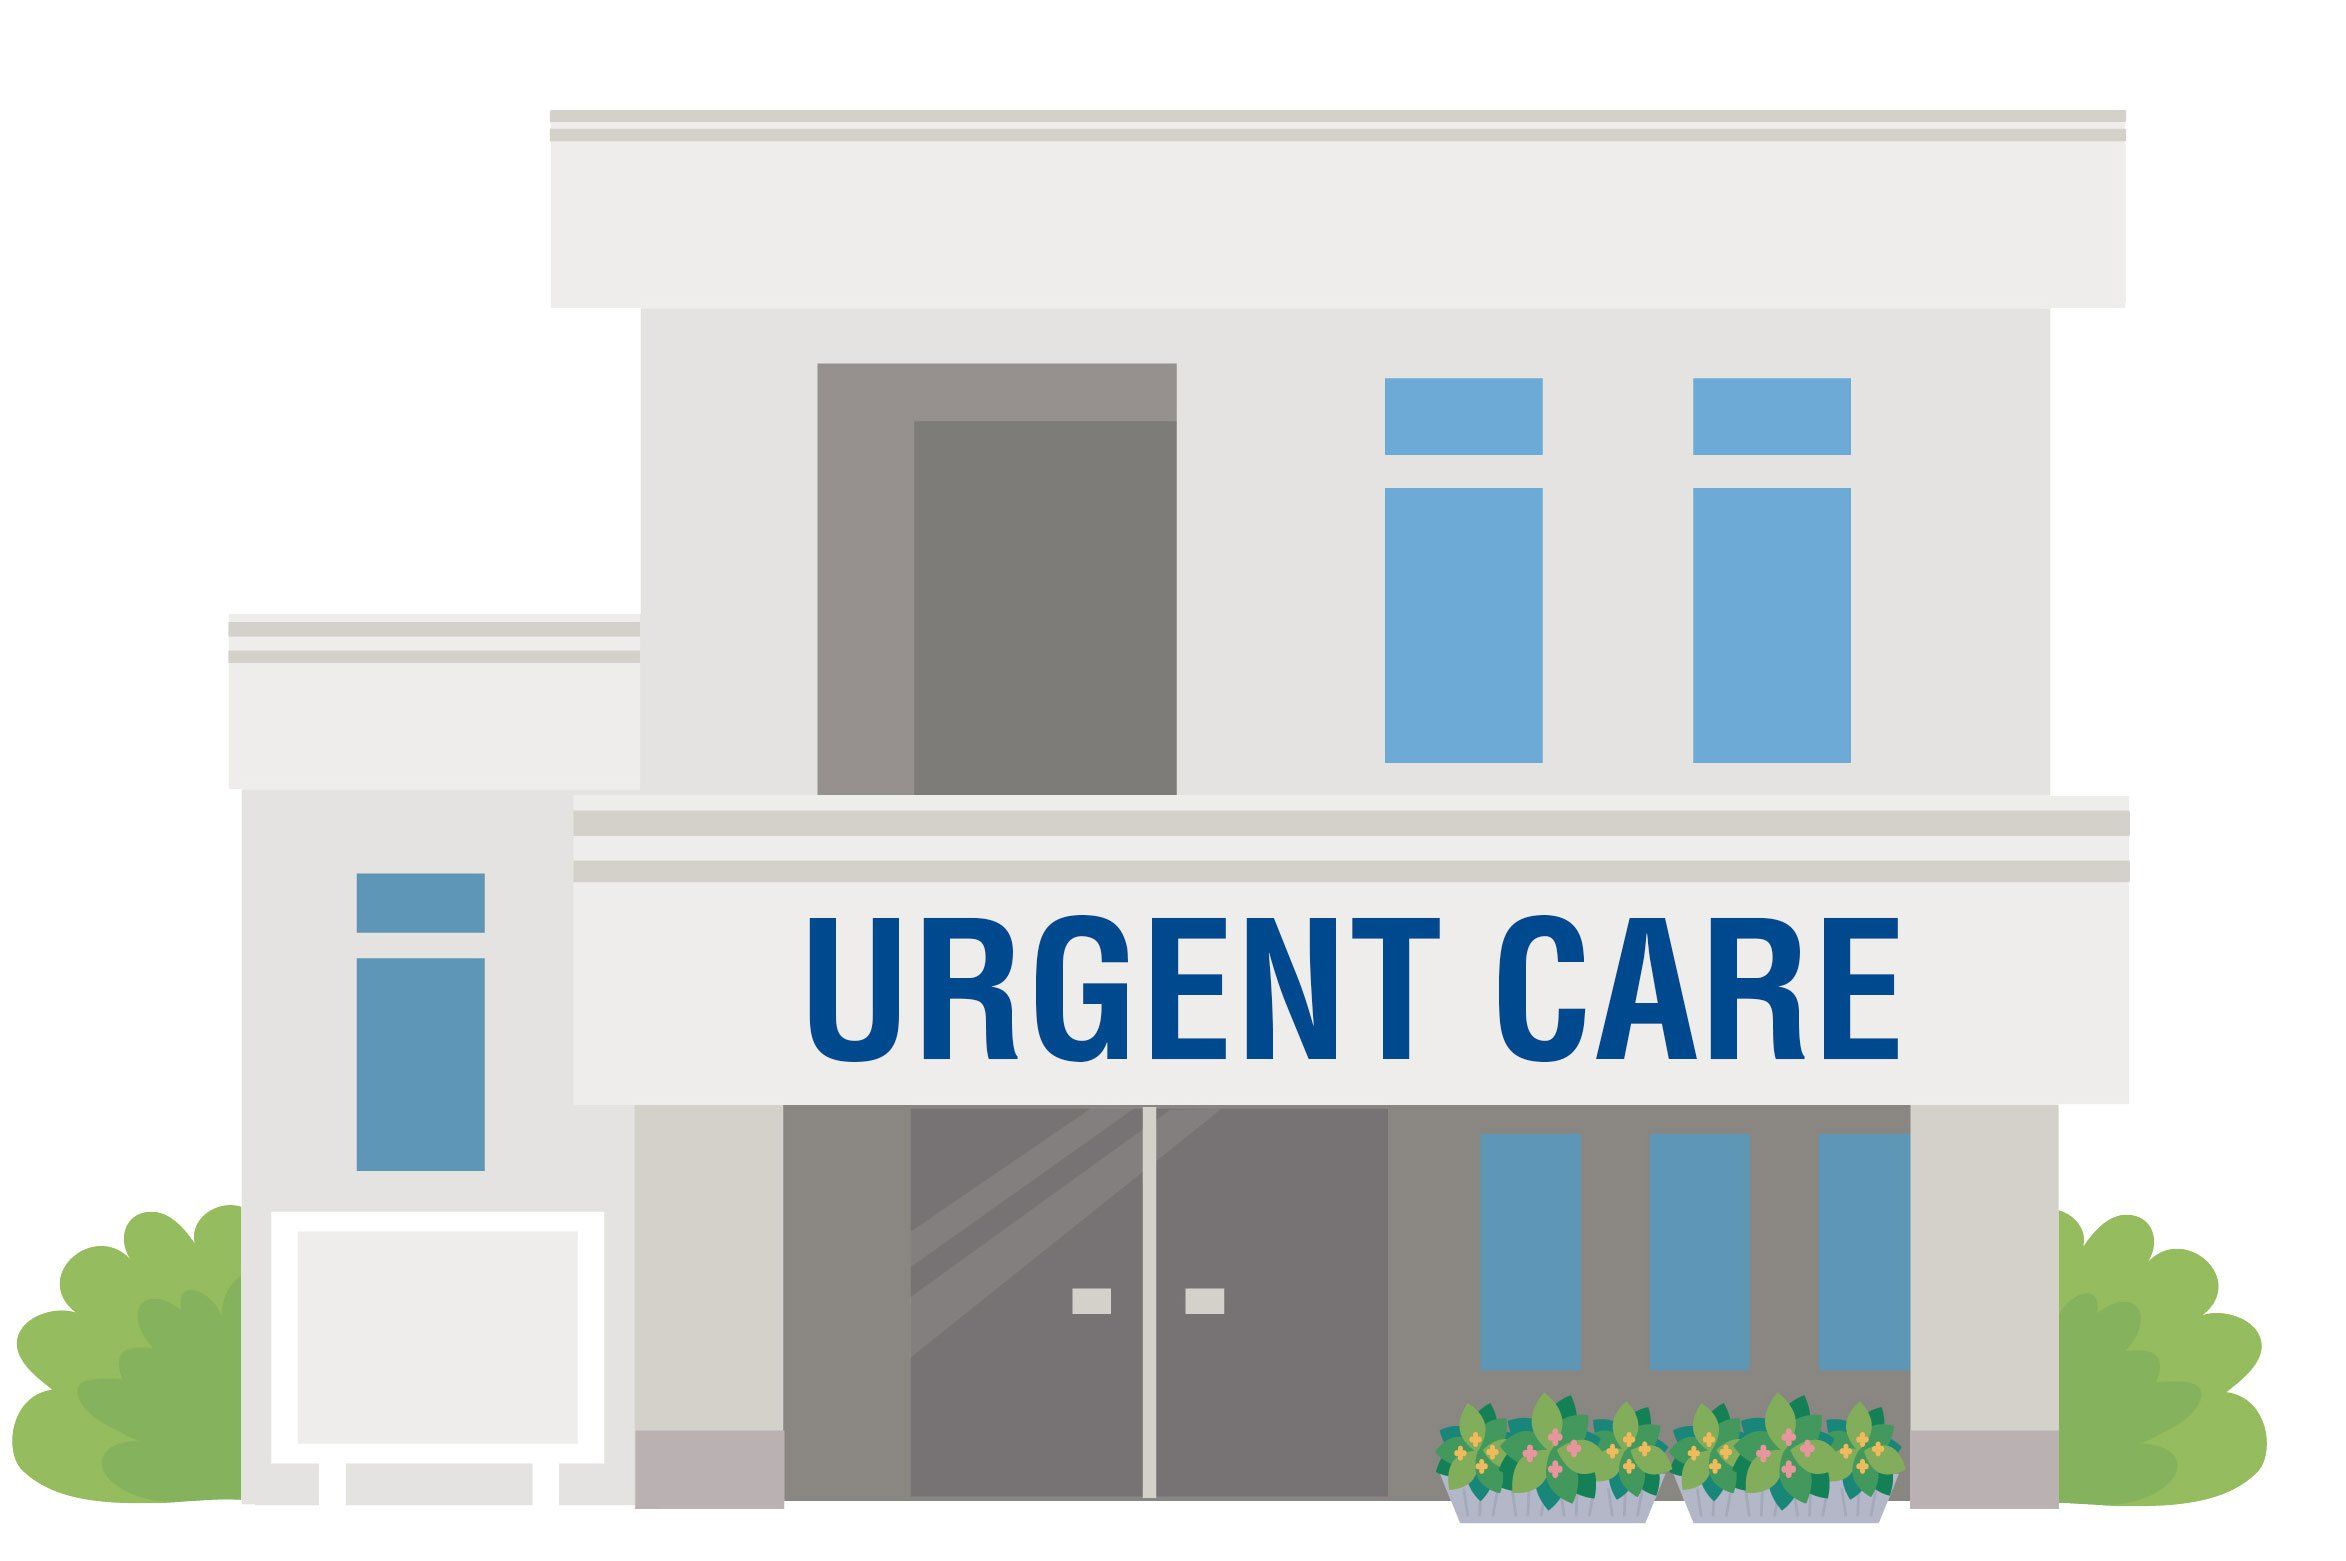 6 Interesting Facts About Urgent Care